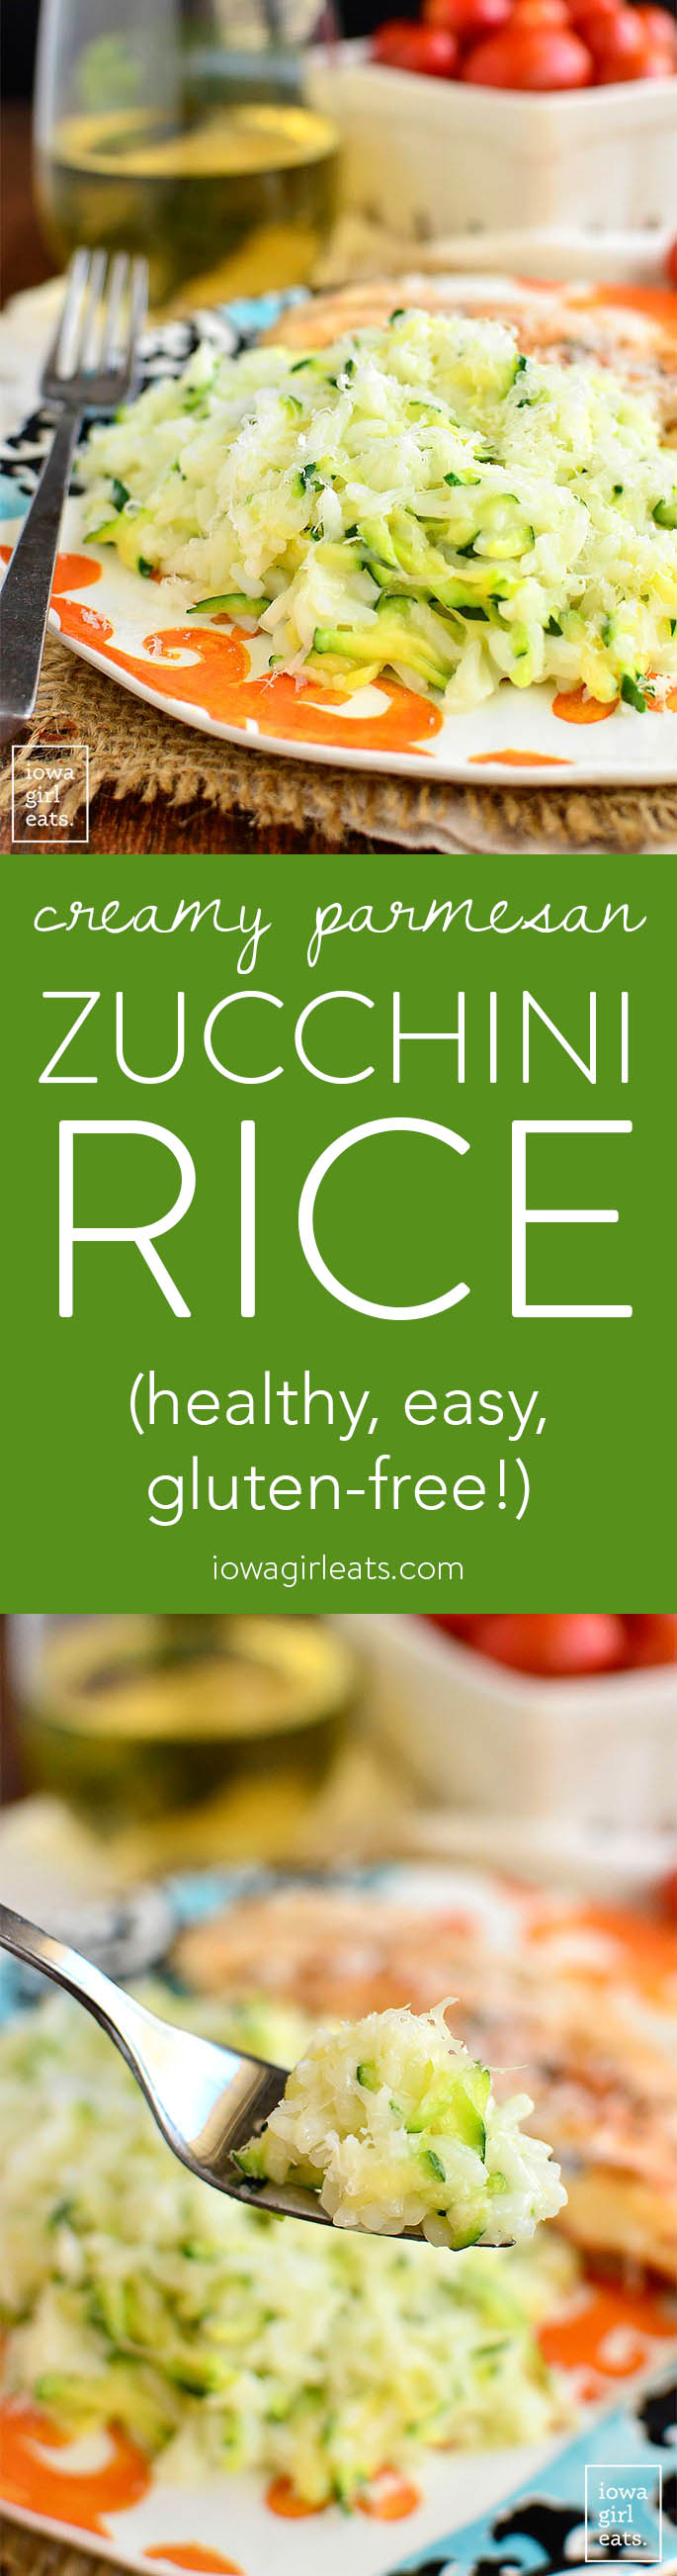 Creamy Parmesan Zucchini Rice is a quick and easy, vegetable-packed gluten-free side dish recipe calling for just 5 ingredients (plus salt!) | iowagirleats.com